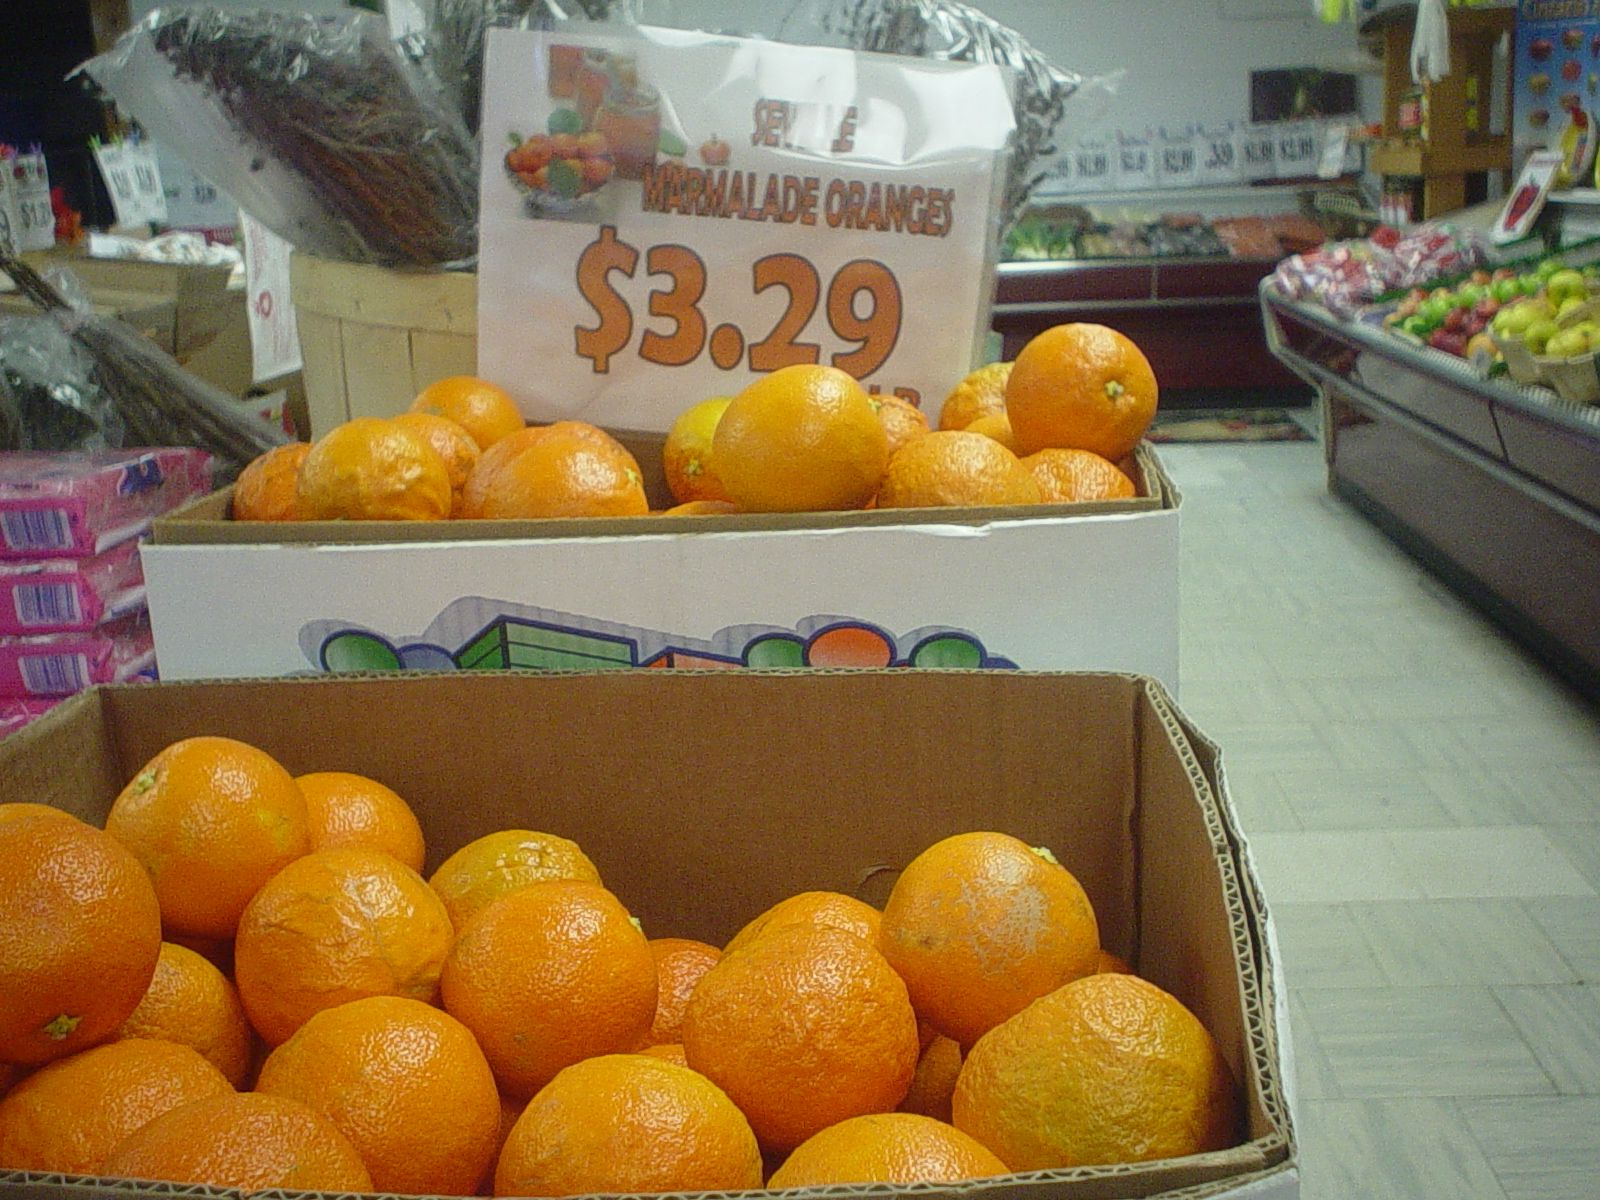 Seville oranges are back in stock! While supplies last - pick up yours today for making that perfect marmalade at home!